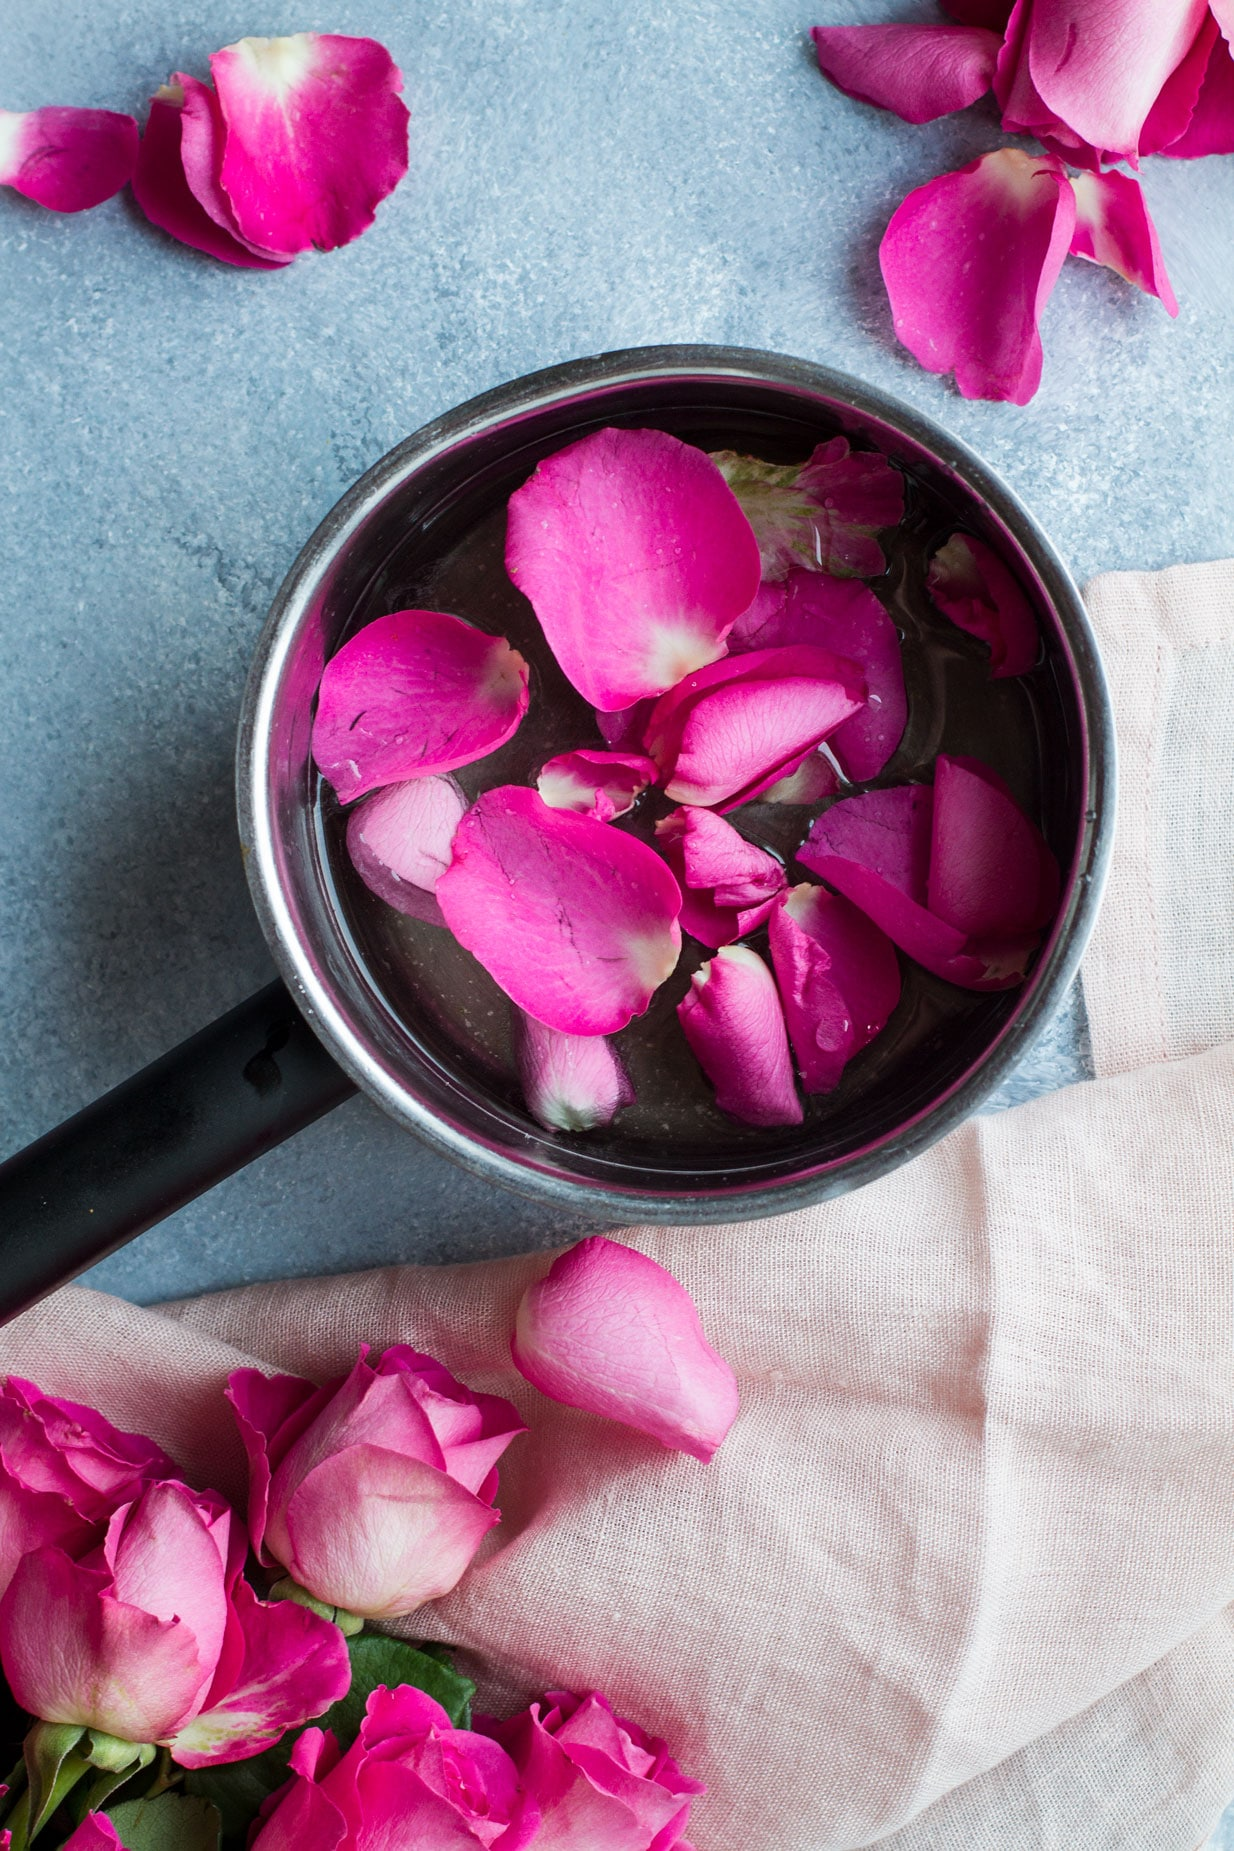 Bird's eye view of a saucepan with pink rose petals. Roses in the bottom left corner, blue background and pink cloth.